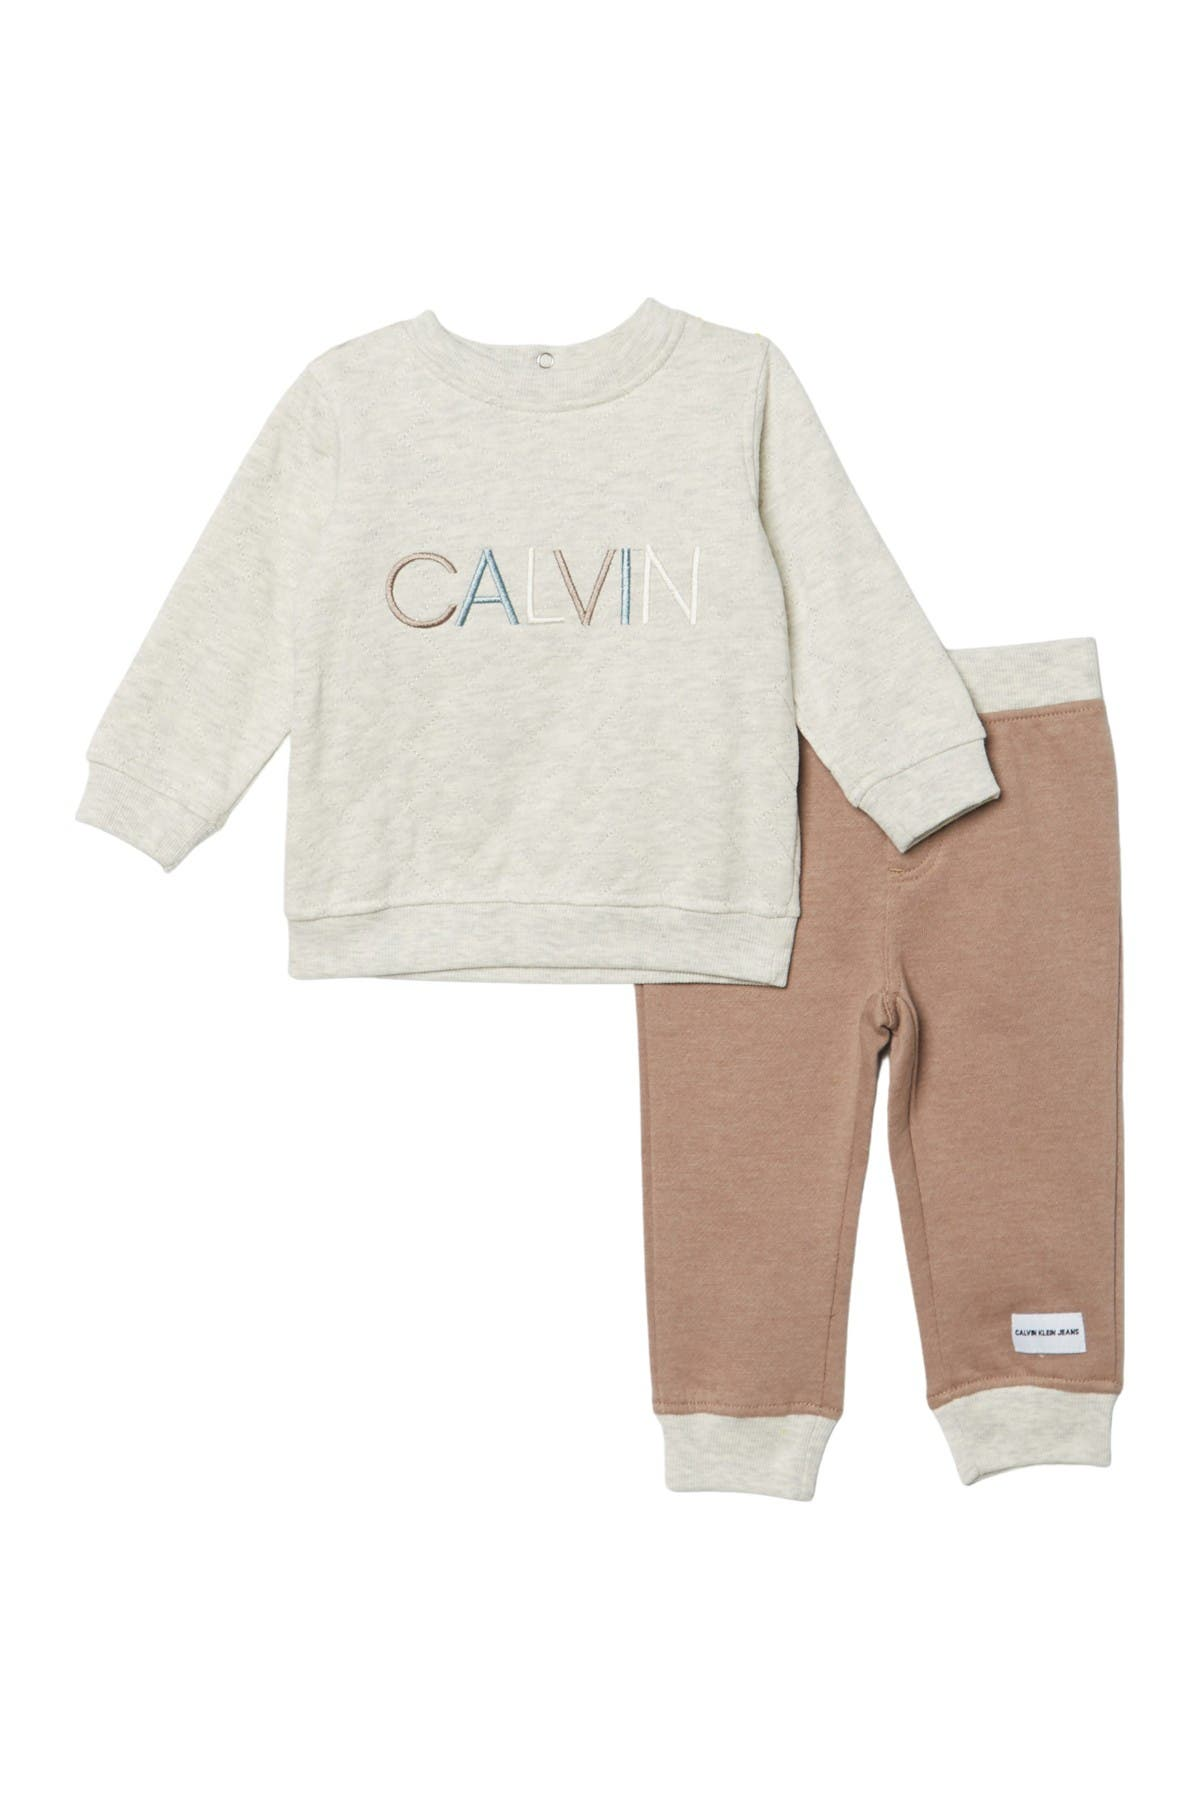 Image of Calvin Klein Embroidered Crew Sweater & Colorblock Sweatpants Set